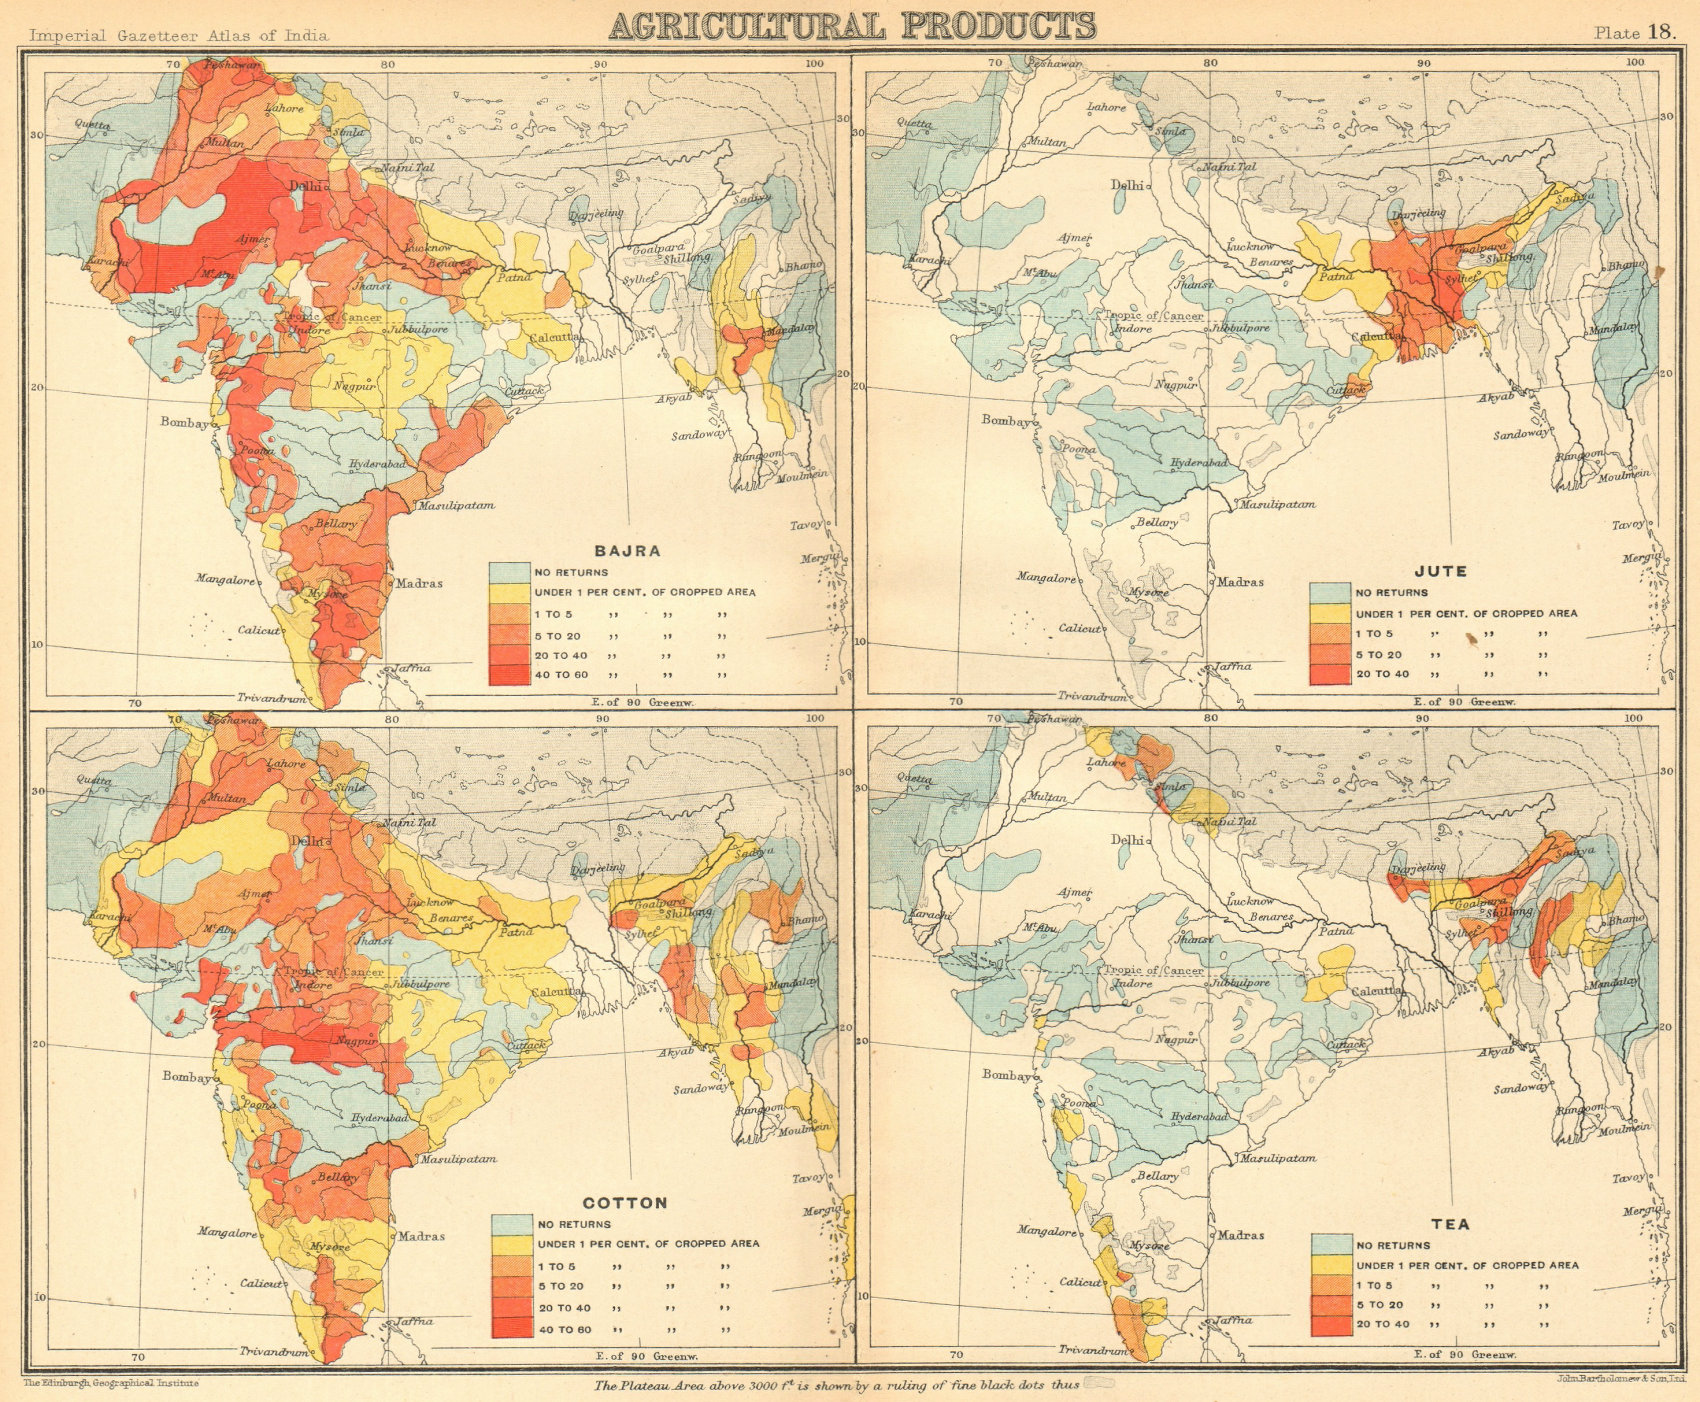 Associate Product BRITISH INDIA Agricultural Produce. Cotton, Tea, Jute & Bajra 1931 old map